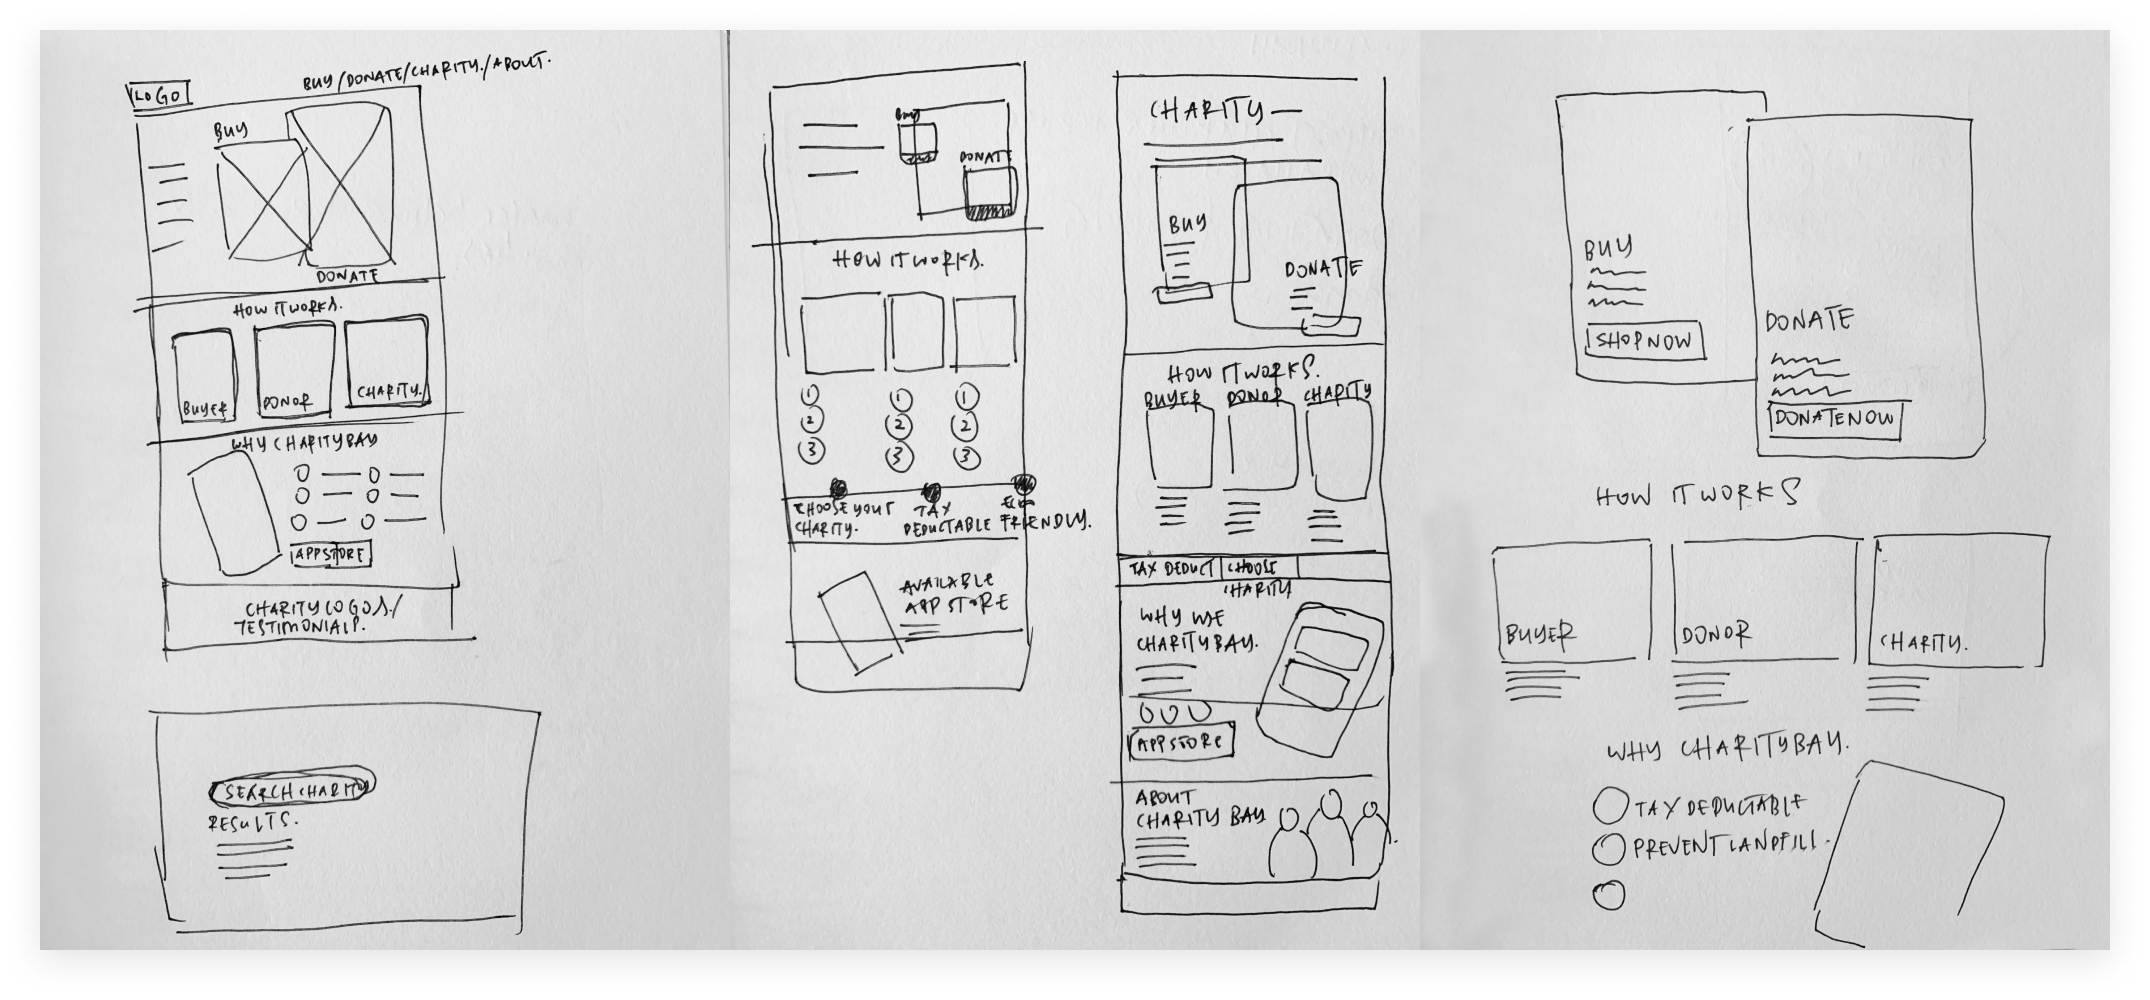 charityBay Case Study Wireframe Homepage Sketches